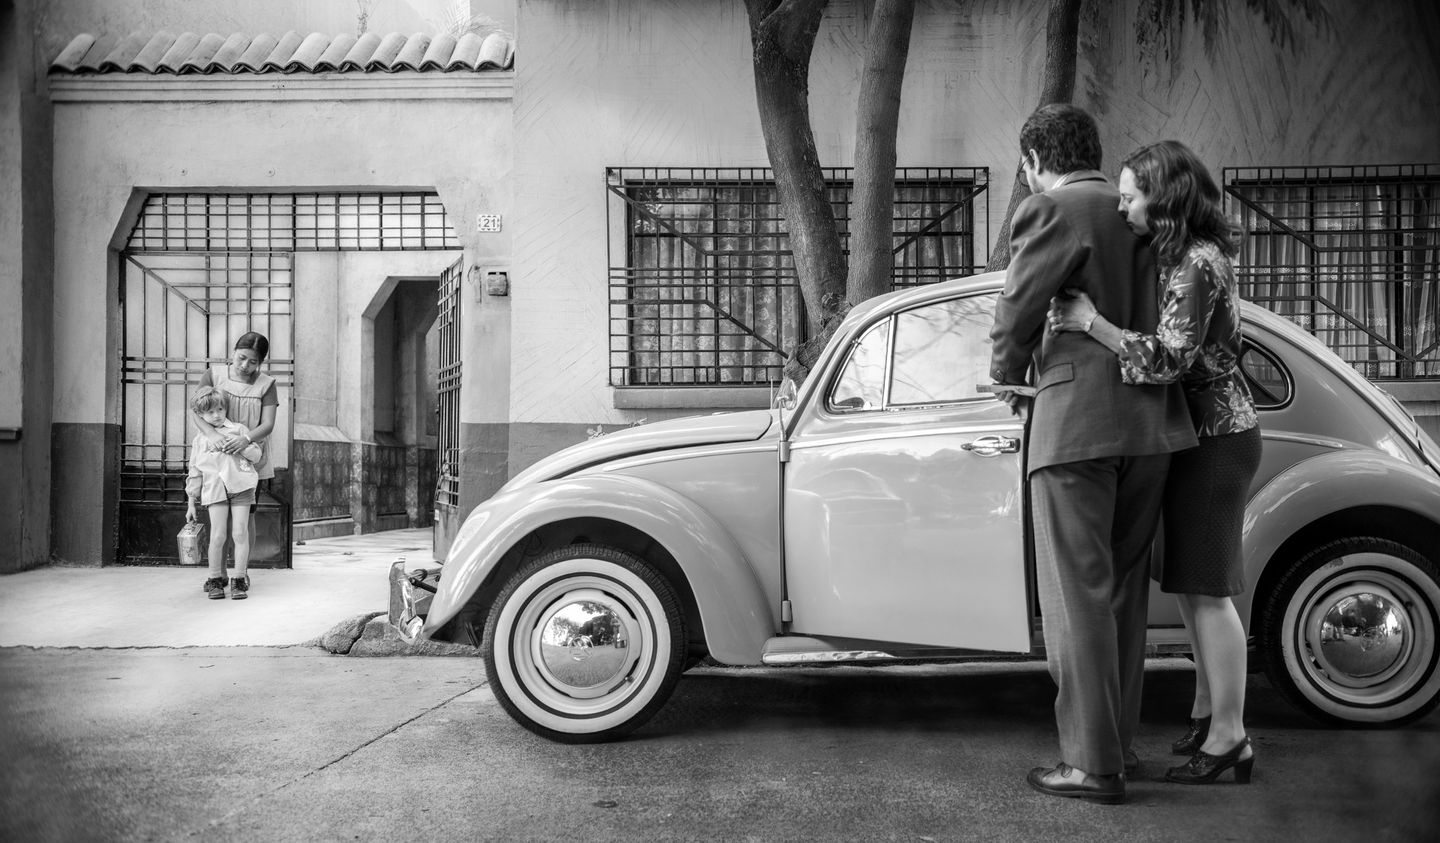 """Roma"" has fomented the darkest impulses within Mexico. And much of this has been missed or ignored by the American media."